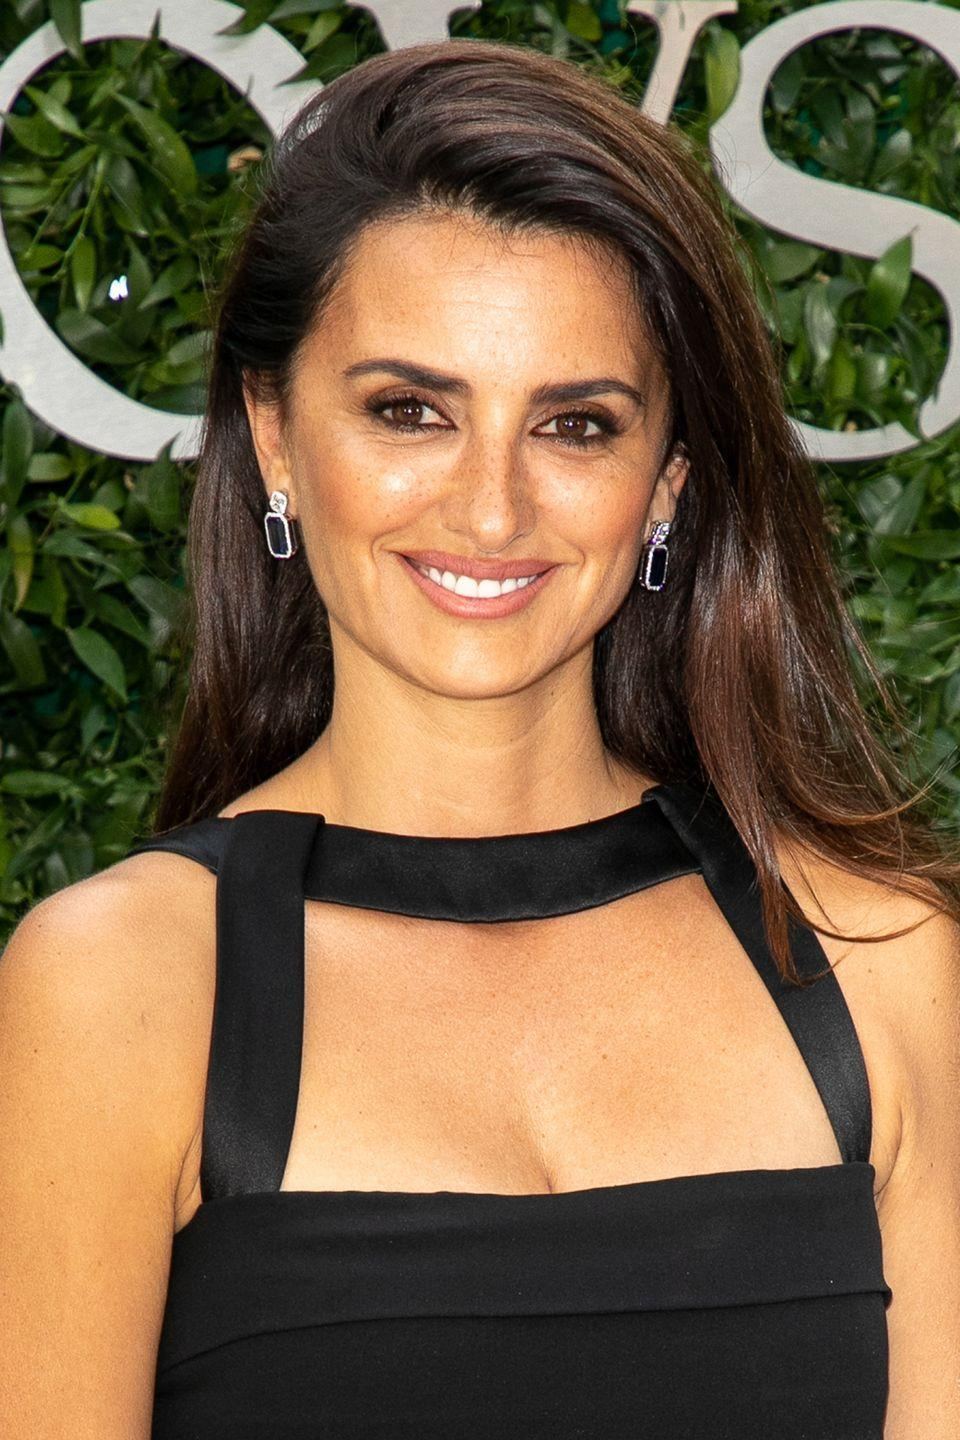 """<p>As Penelope Cruz demonstrates, by parting your hair far across to one side, you'll effortlessly add volume to your roots. Try Ghd's <a href=""""https://www.ghdhair.com/volumise/root-lift-spray?CMP=EMC-555&PLA=238&CRE=BRAND&TYPE=sponsoredsearch&gclid=Cj0KCQjw-JvaBRDGARIsAFjqkkr91x-YWSuPtrwGbgucM6kKN4XubPUU8cQRiQoKdZ9r9I-8VBPiou4aAj2fEALw_wcB&gclsrc=aw.ds"""" rel=""""nofollow noopener"""" target=""""_blank"""" data-ylk=""""slk:Root Lift Spray"""" class=""""link rapid-noclick-resp"""">Root Lift Spray</a> for height that looks especially natural.</p>"""